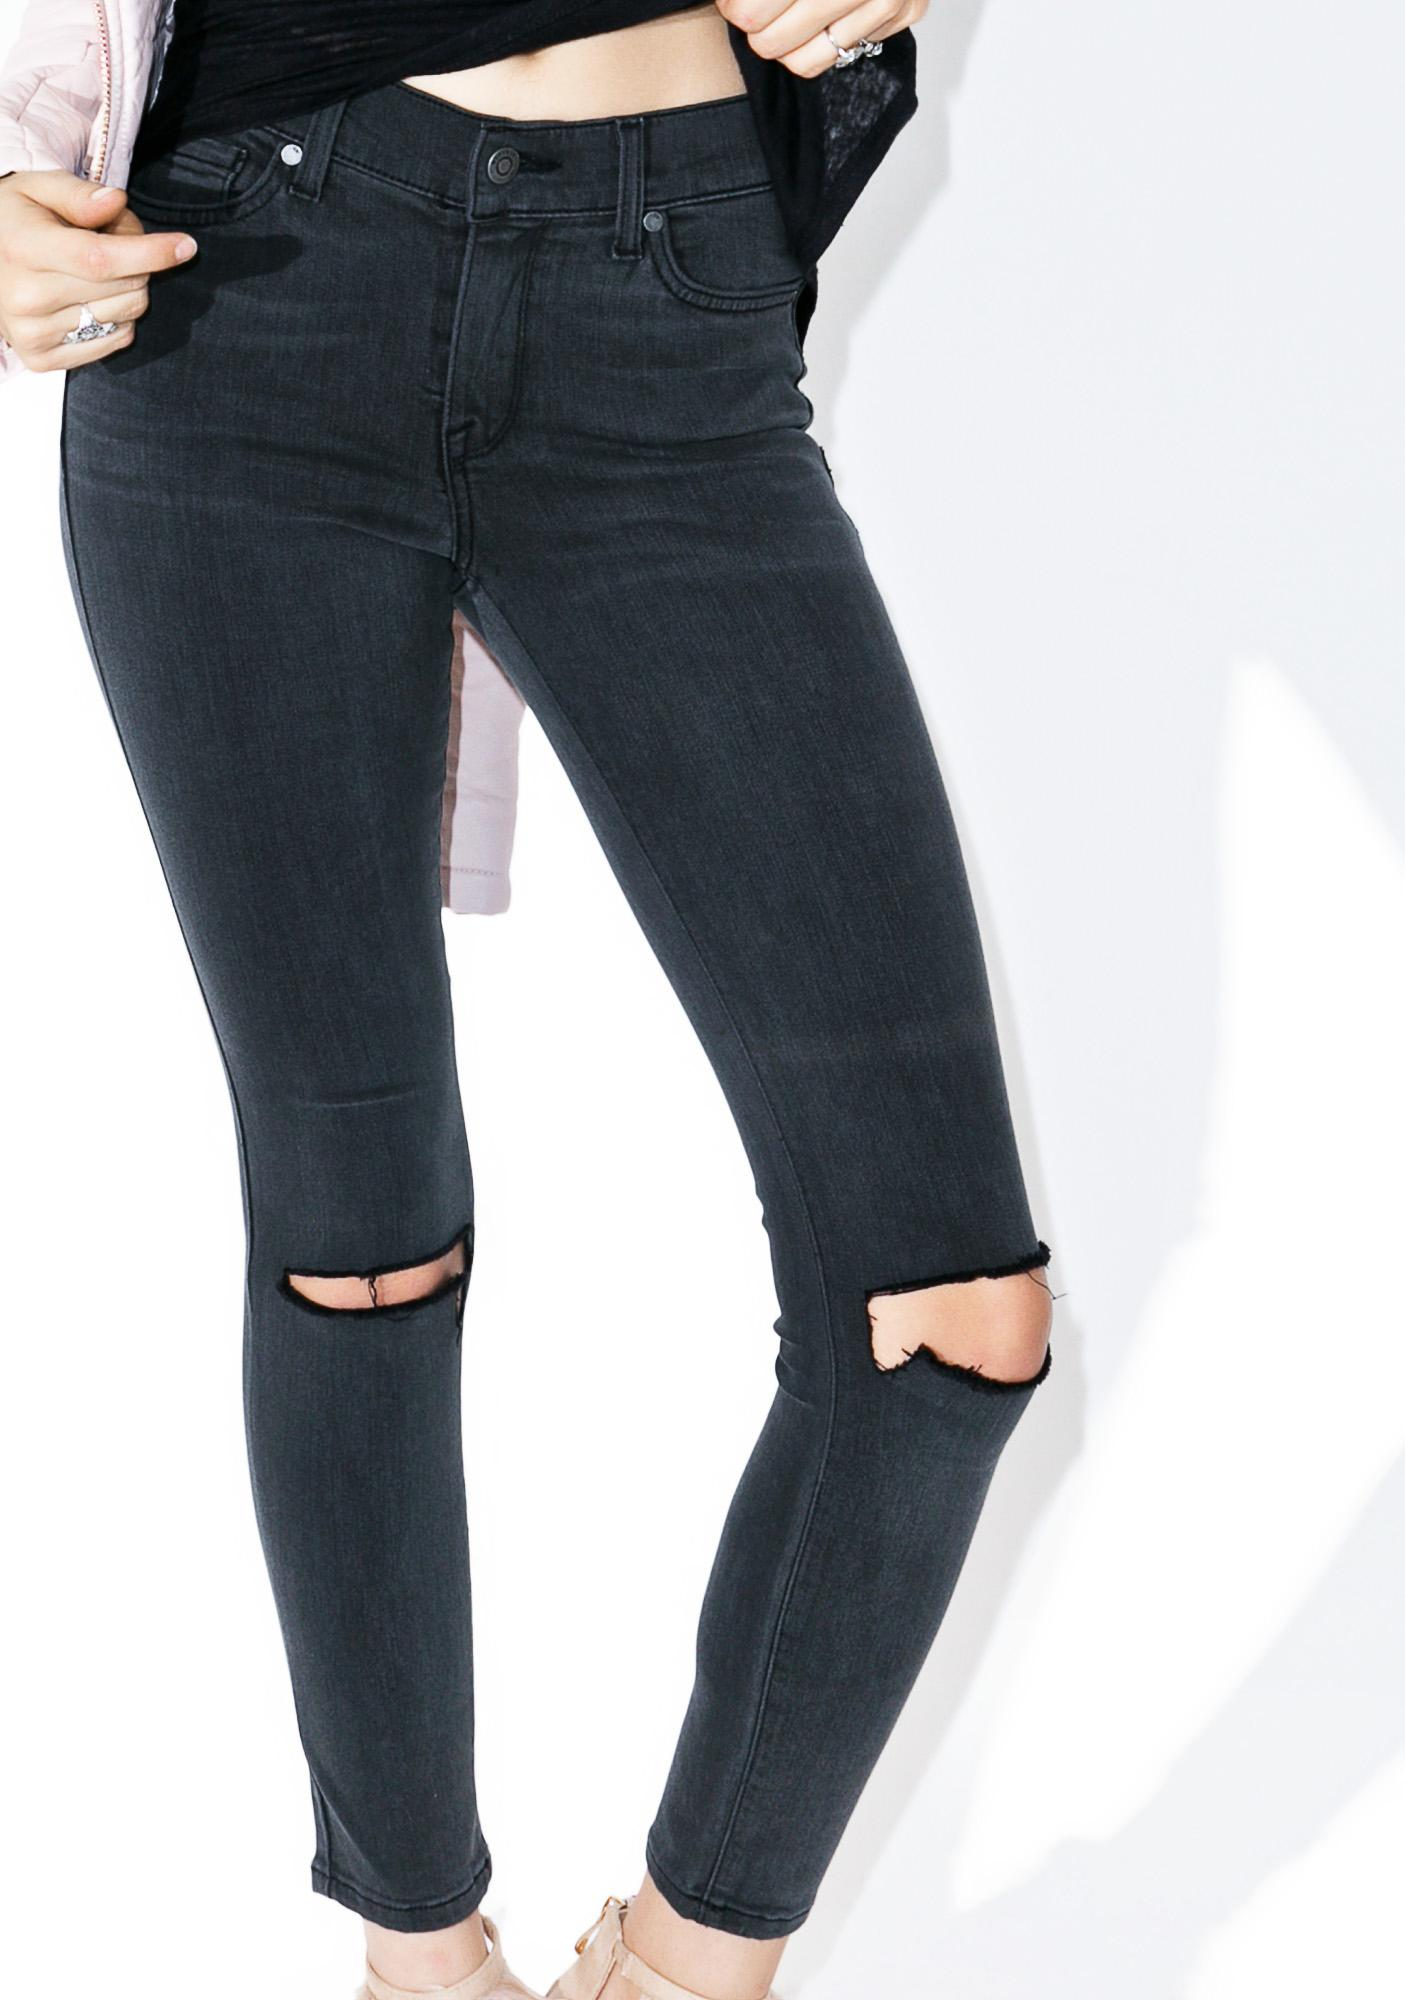 Fall 2 Knees Slit Jeans